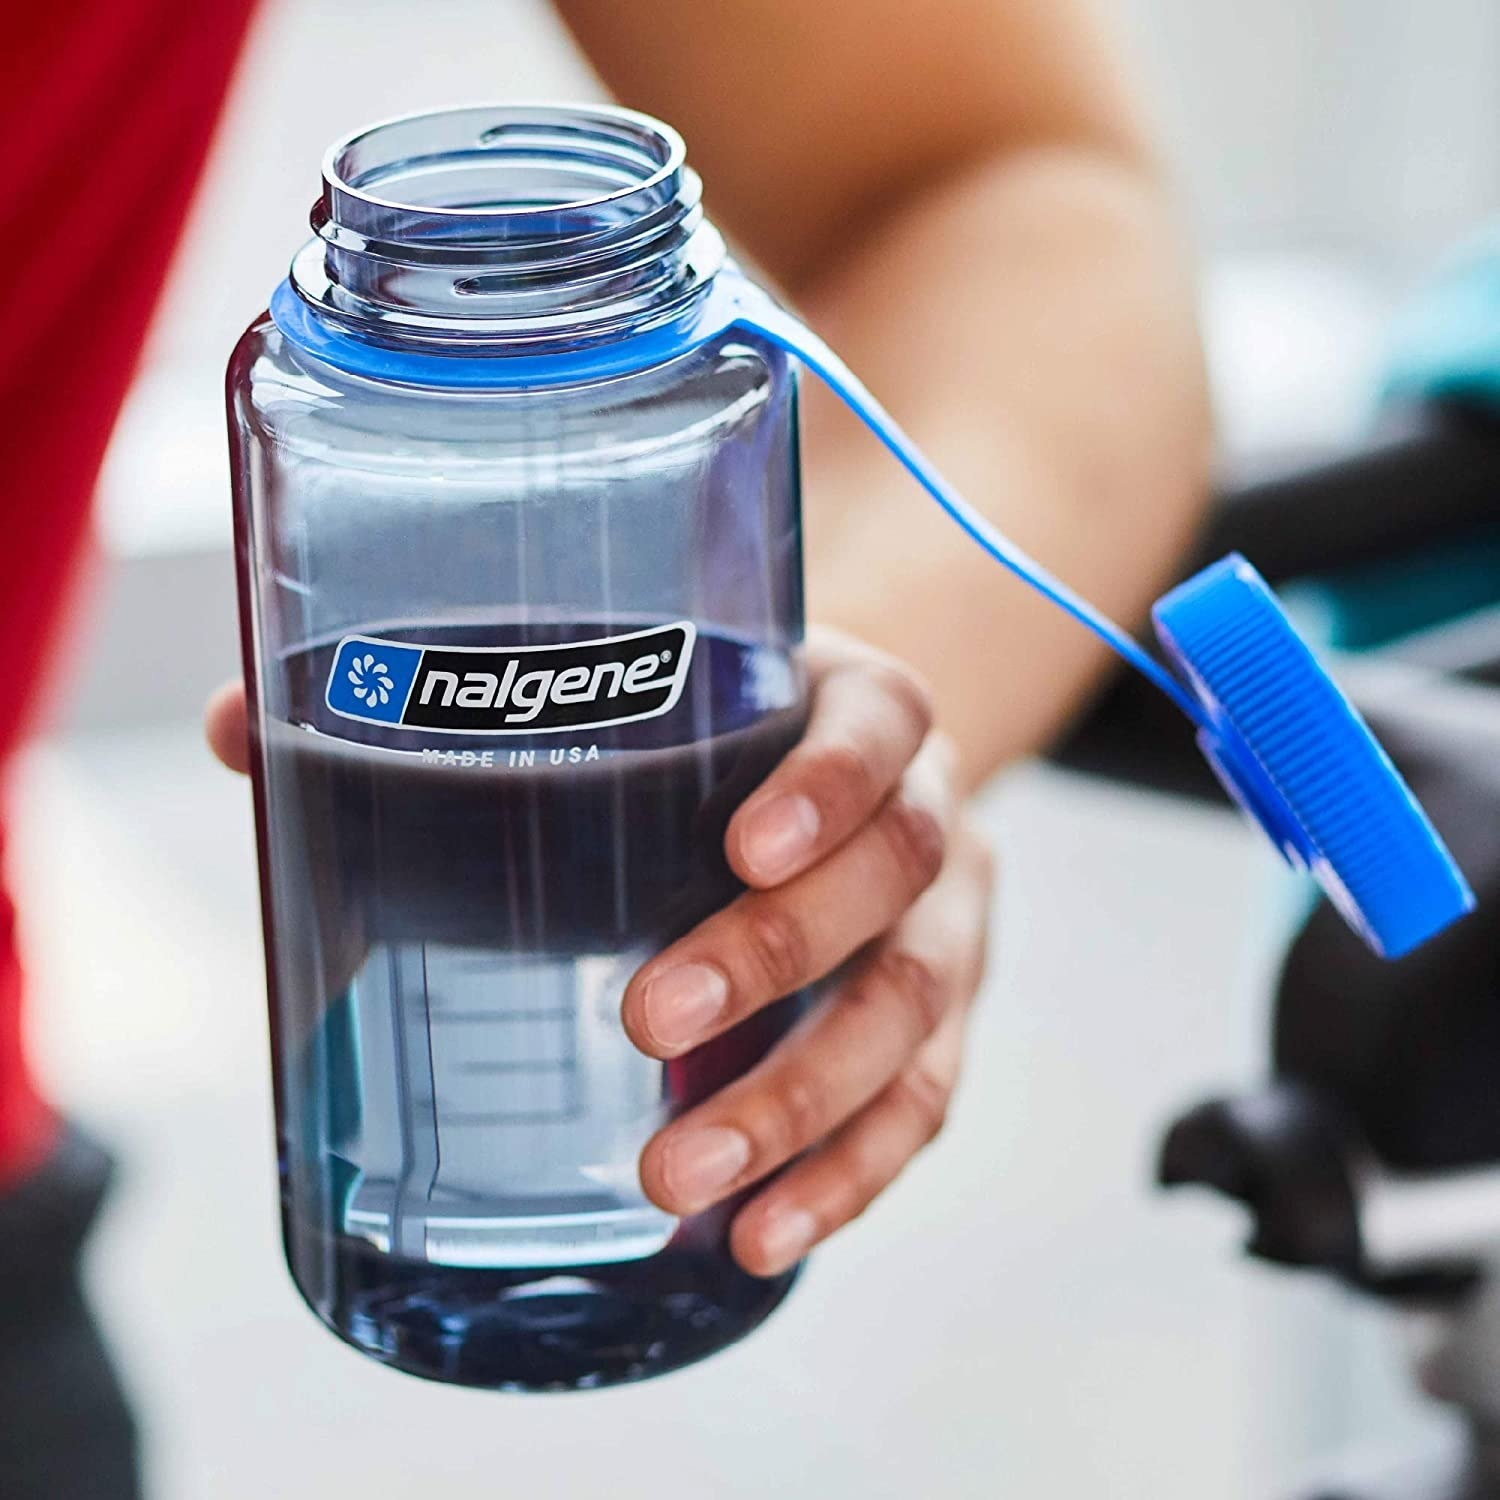 hand holding a blue nalgene water bottle filled with water